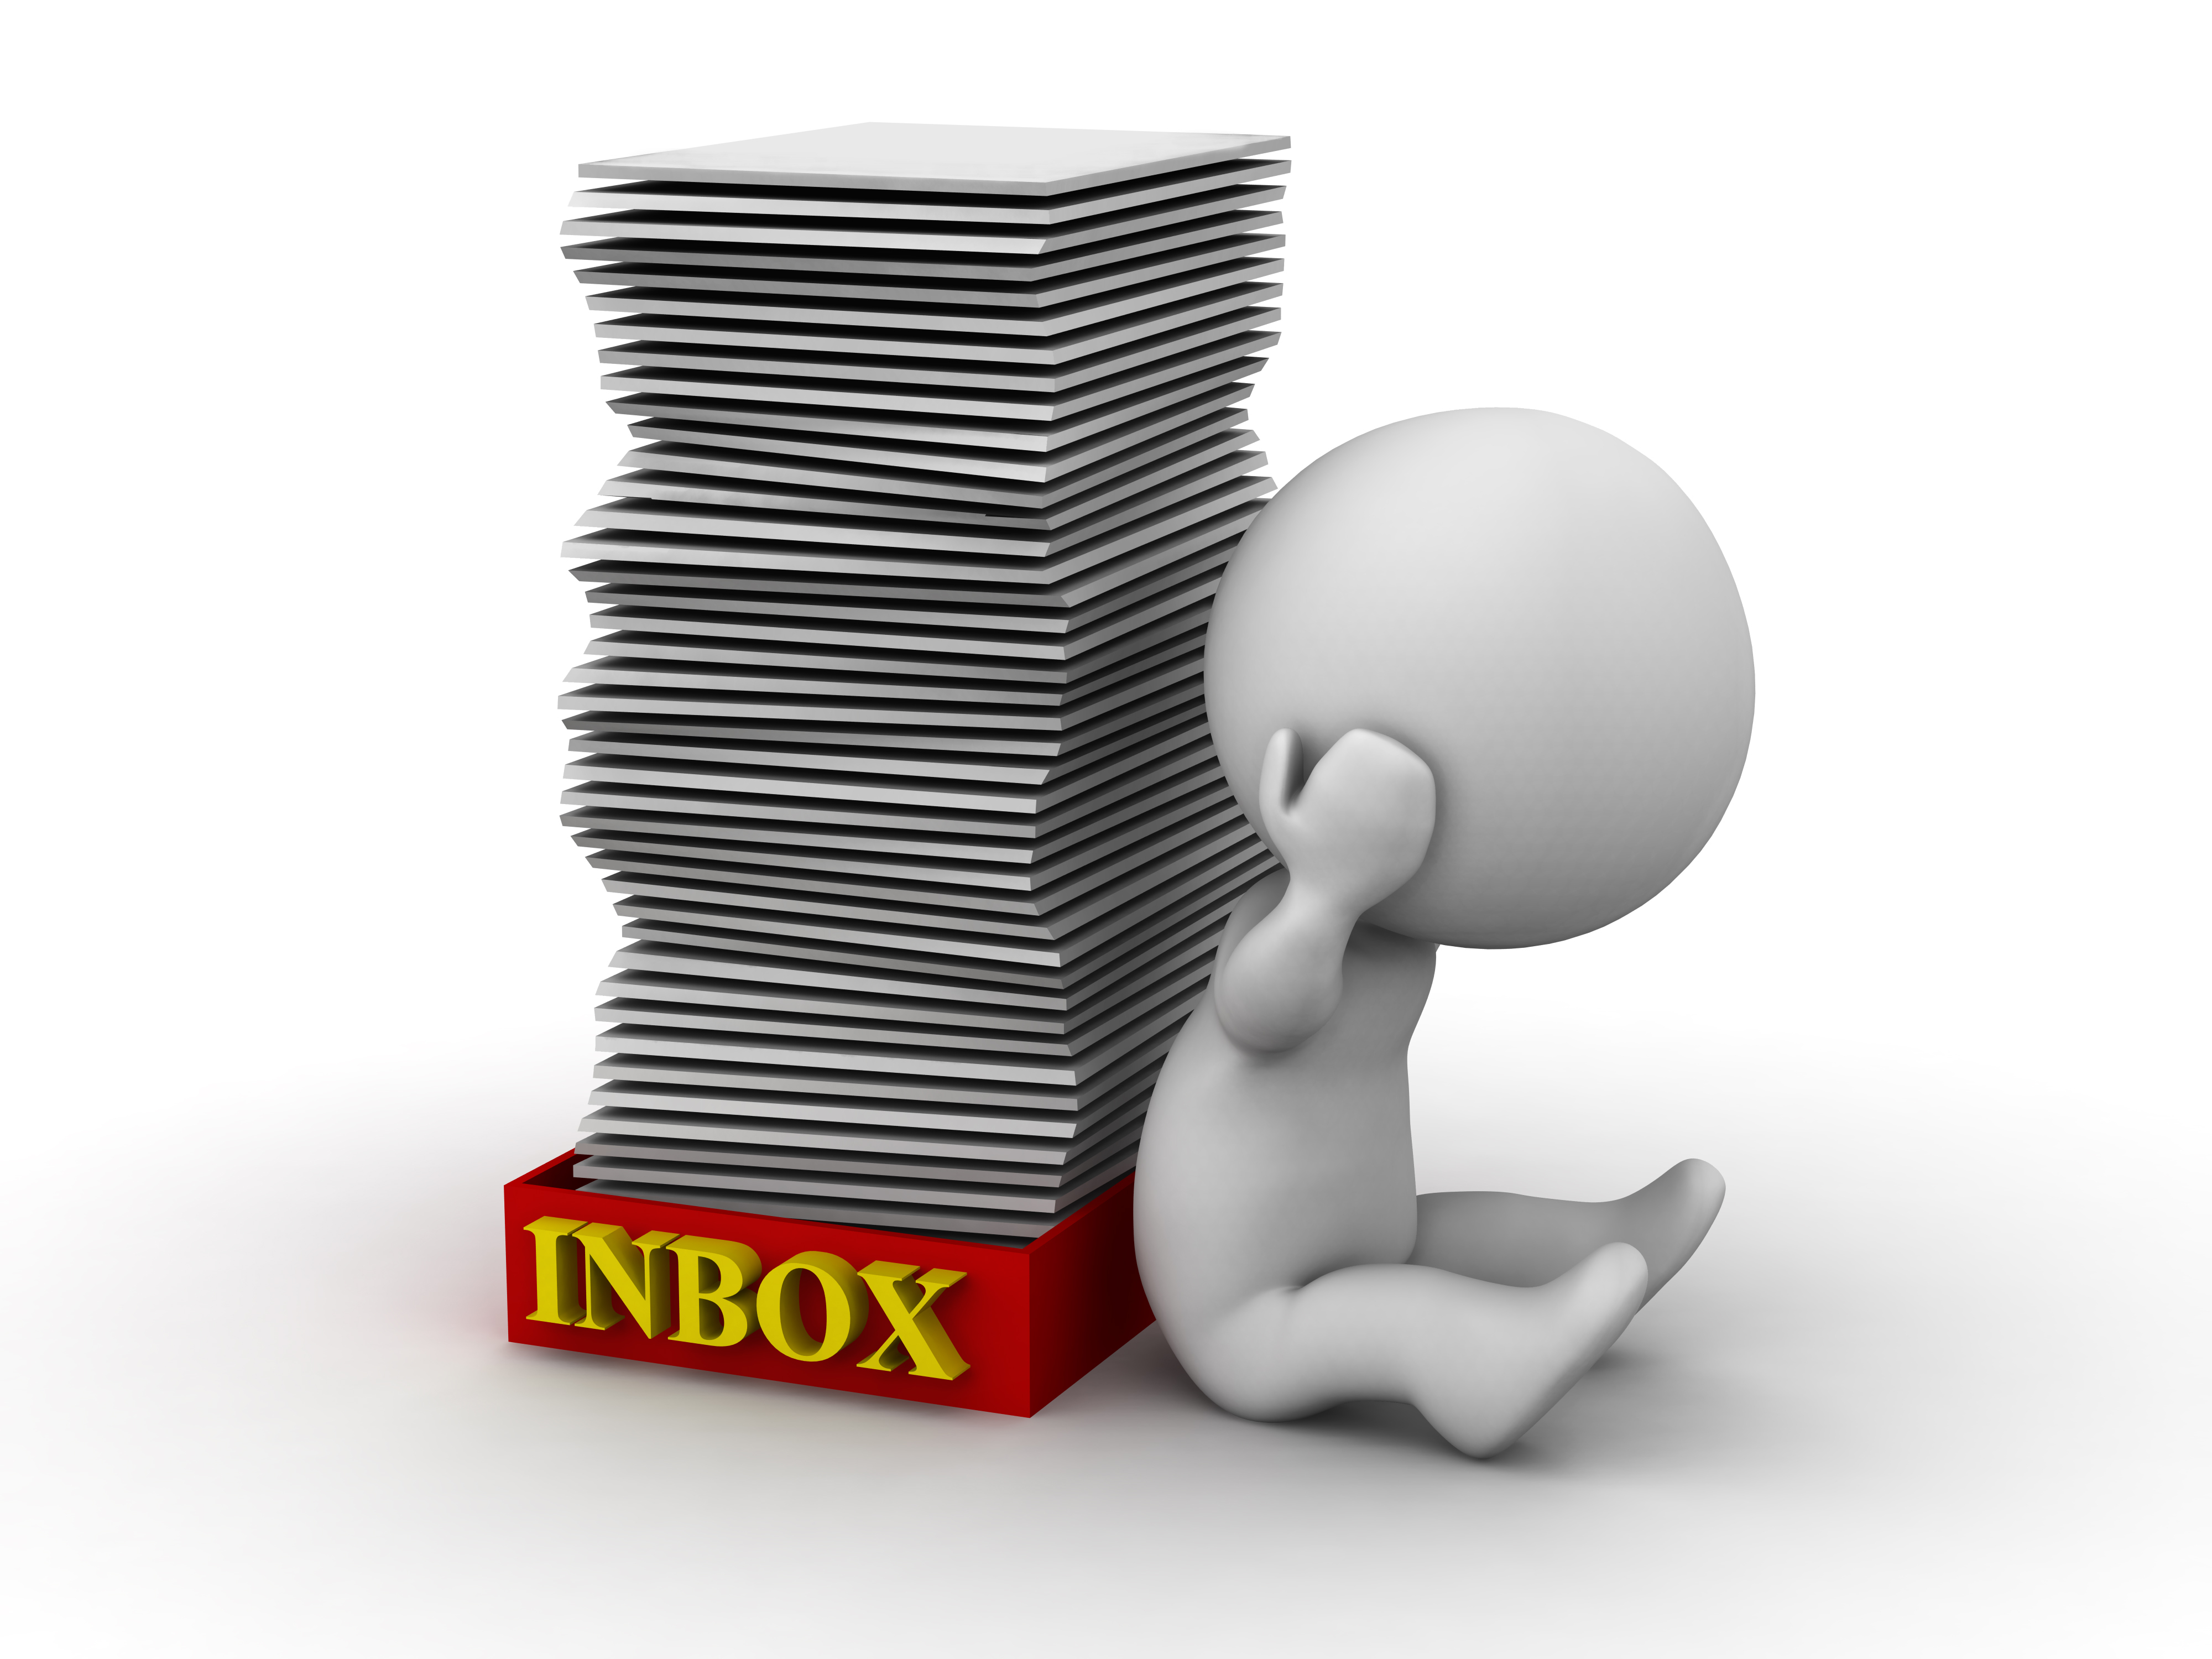 Image of a person with a pile of Inbox emails